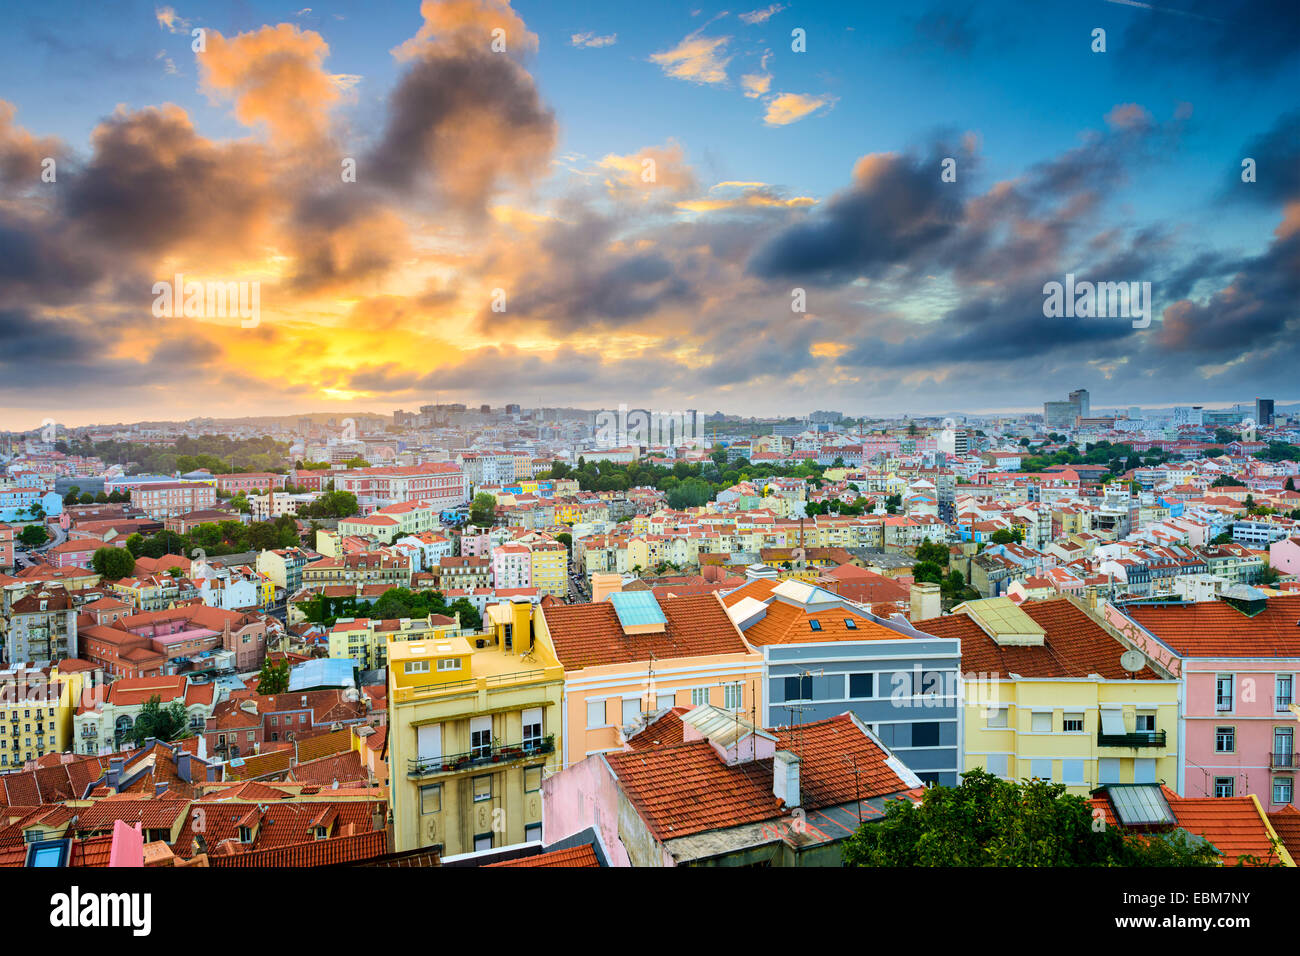 Lisbon, Portugal Baixa district skyline during sunset. - Stock Image